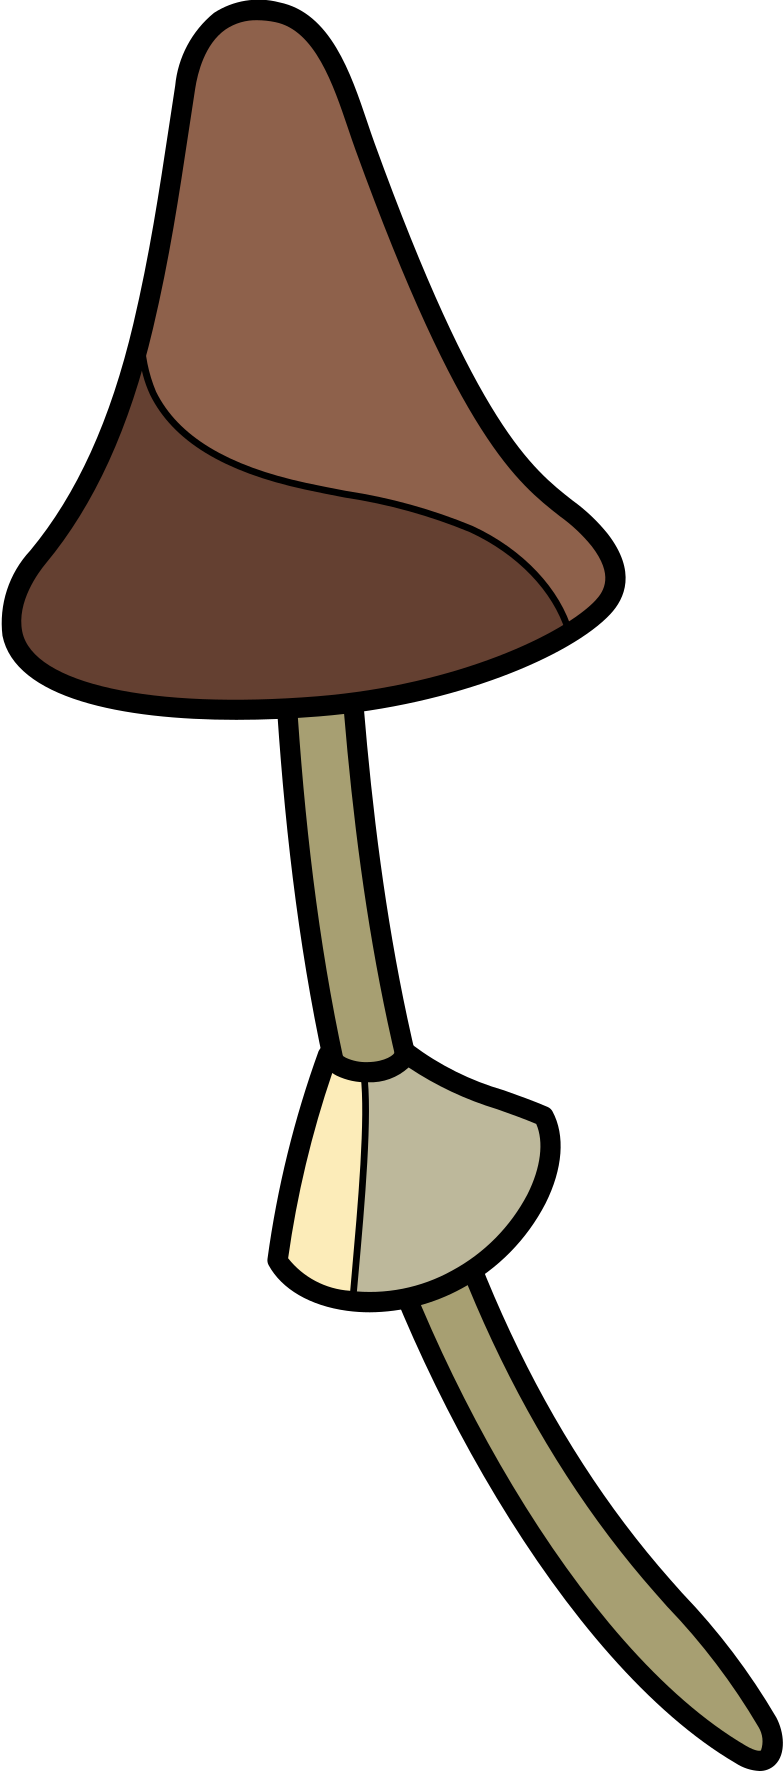 style m mushroom Vector images in PNG and SVG | Icons8 Illustrations